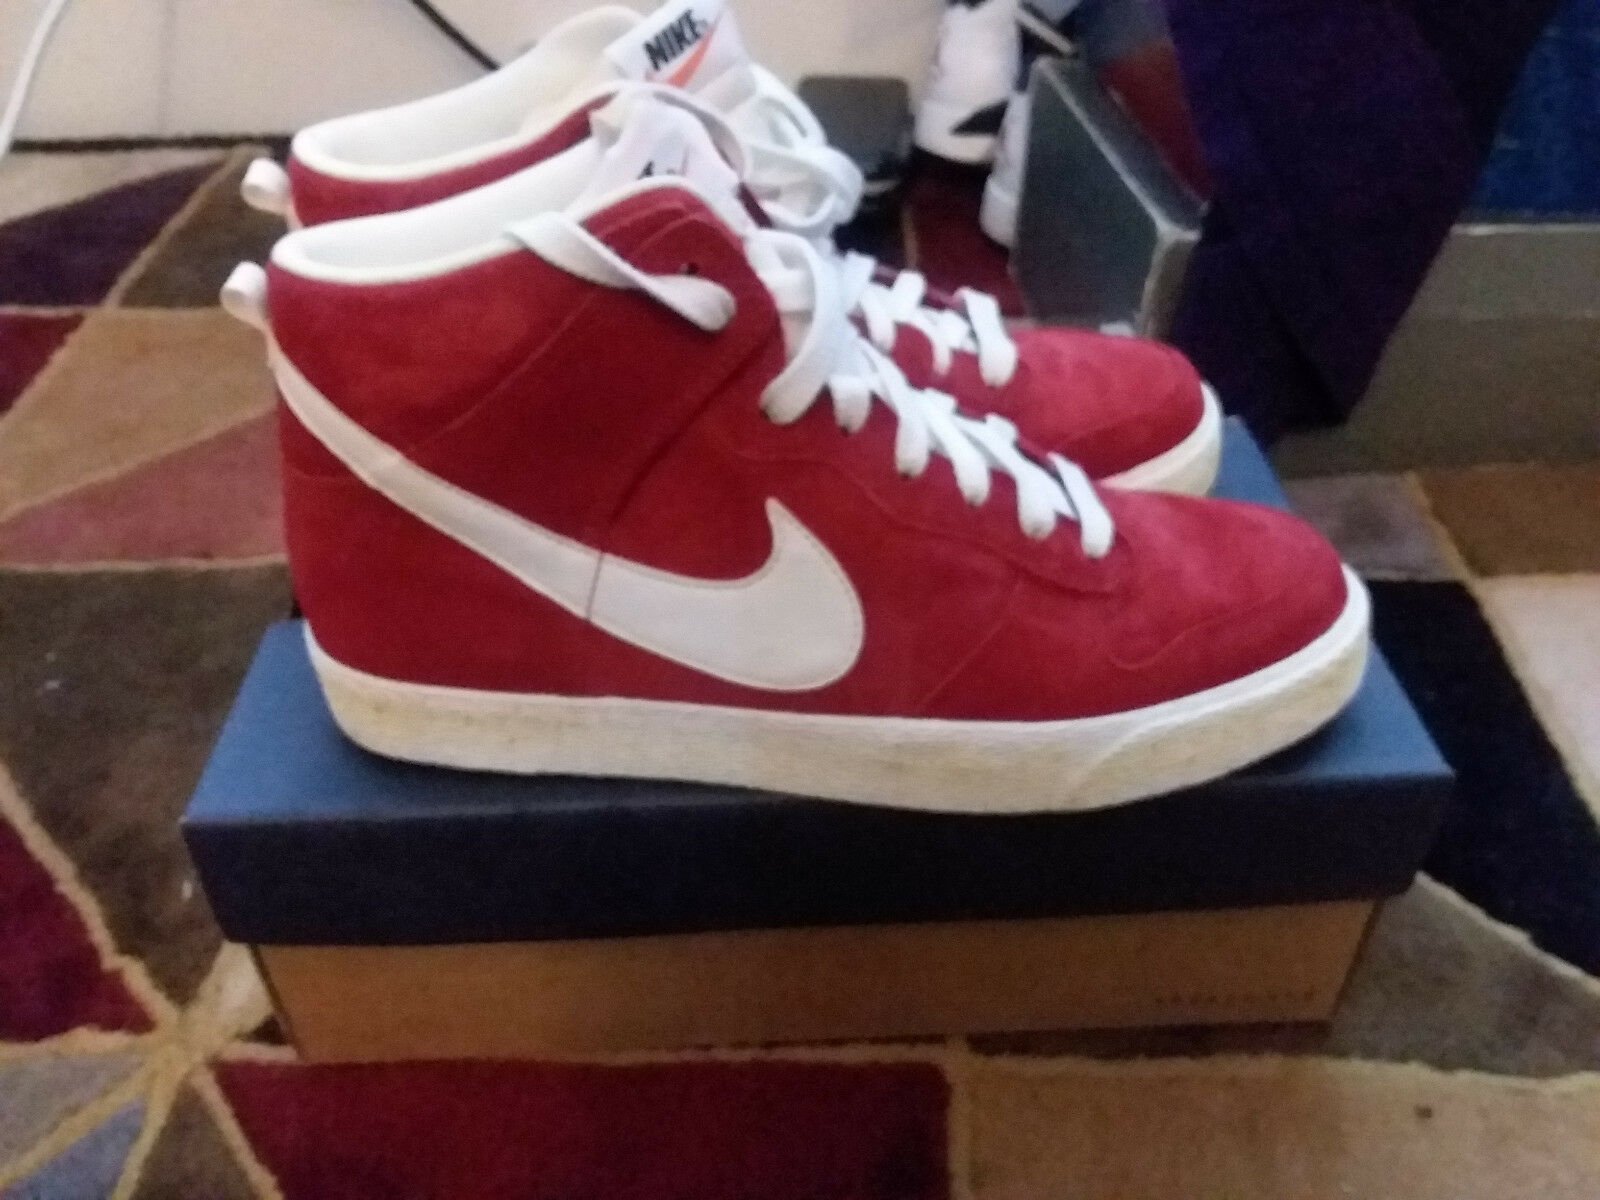 Nike Dunk High AC Varsity Red Suede Sail QS size 9.5 398263-601